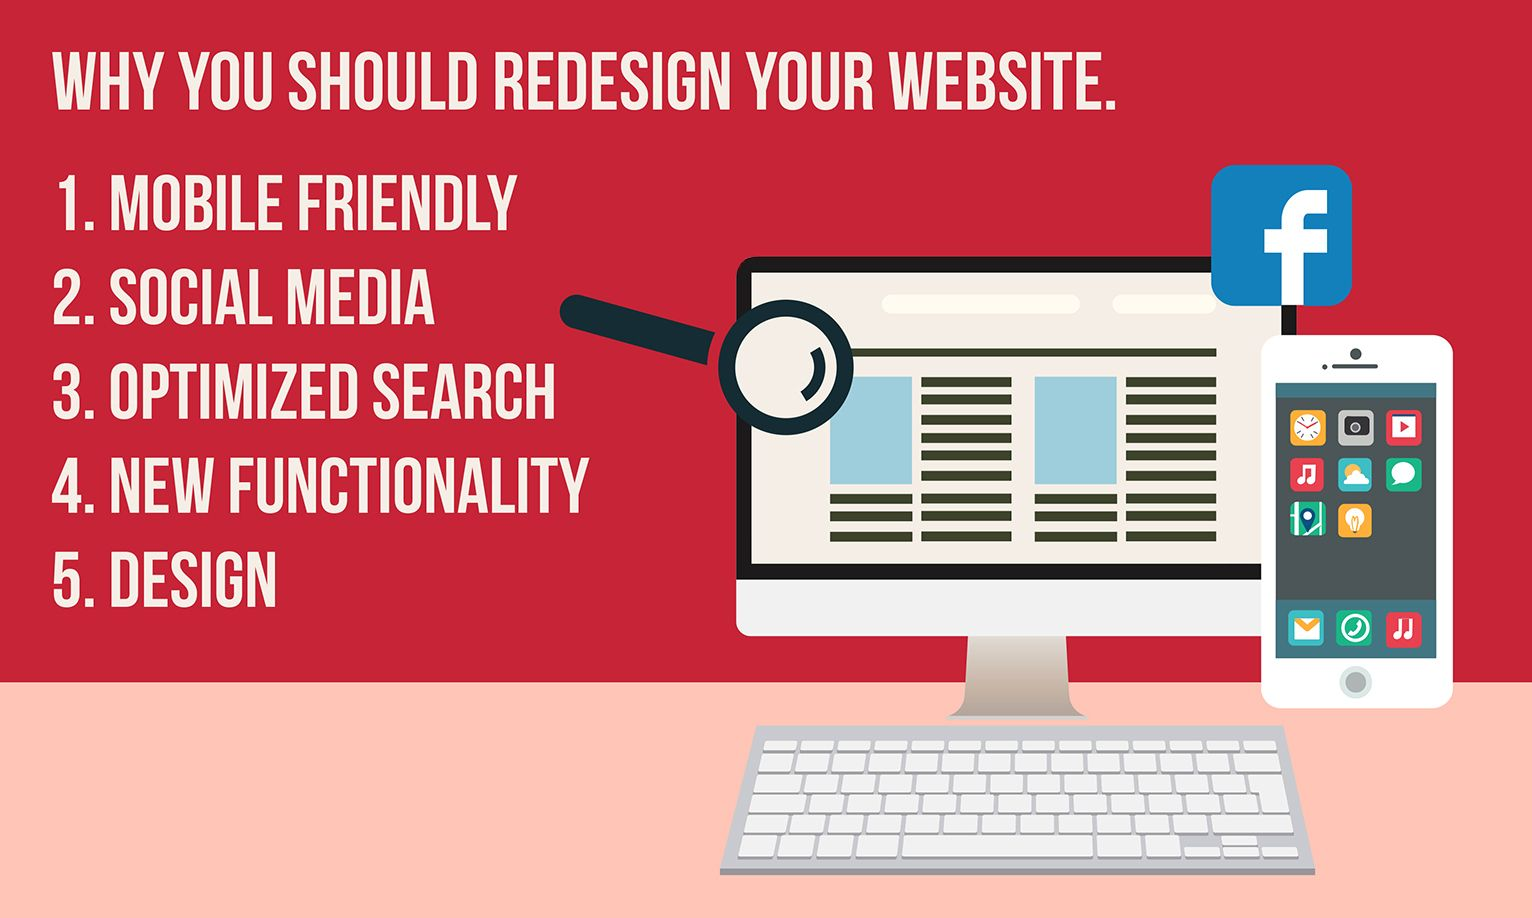 Give your website visitors more functionality and features